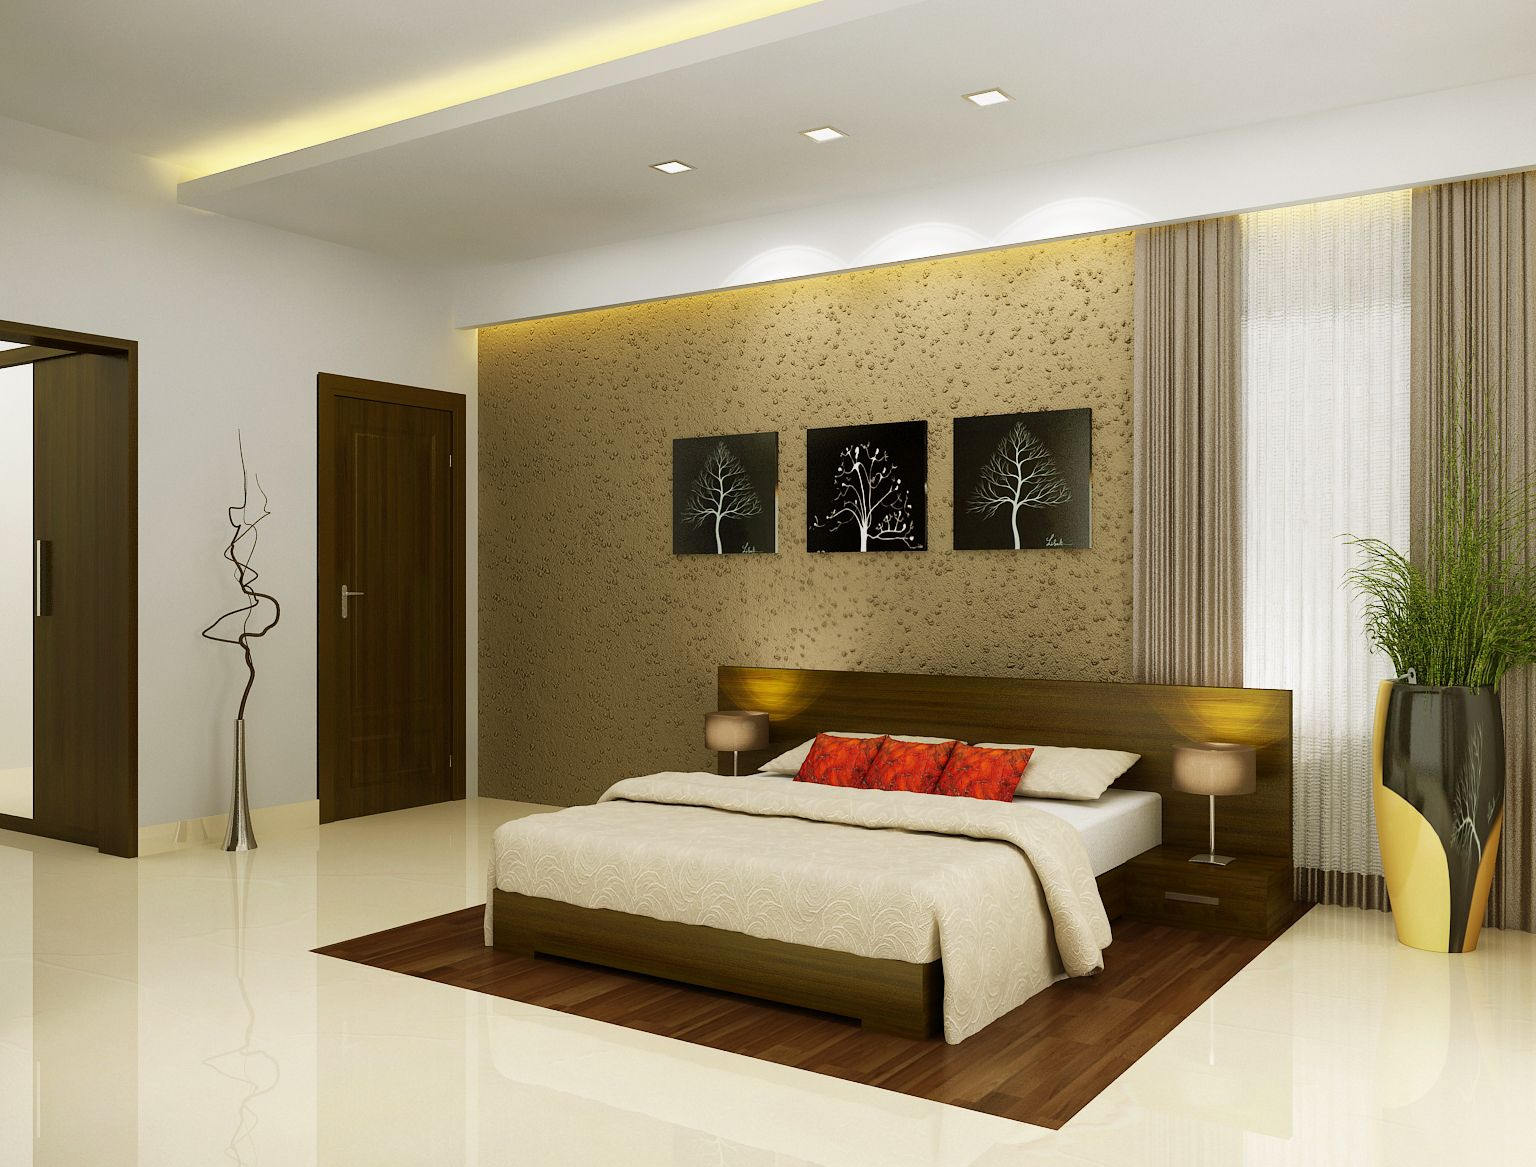 Bedroom design kerala style design ideas 2017 2018 for New style bedroom design